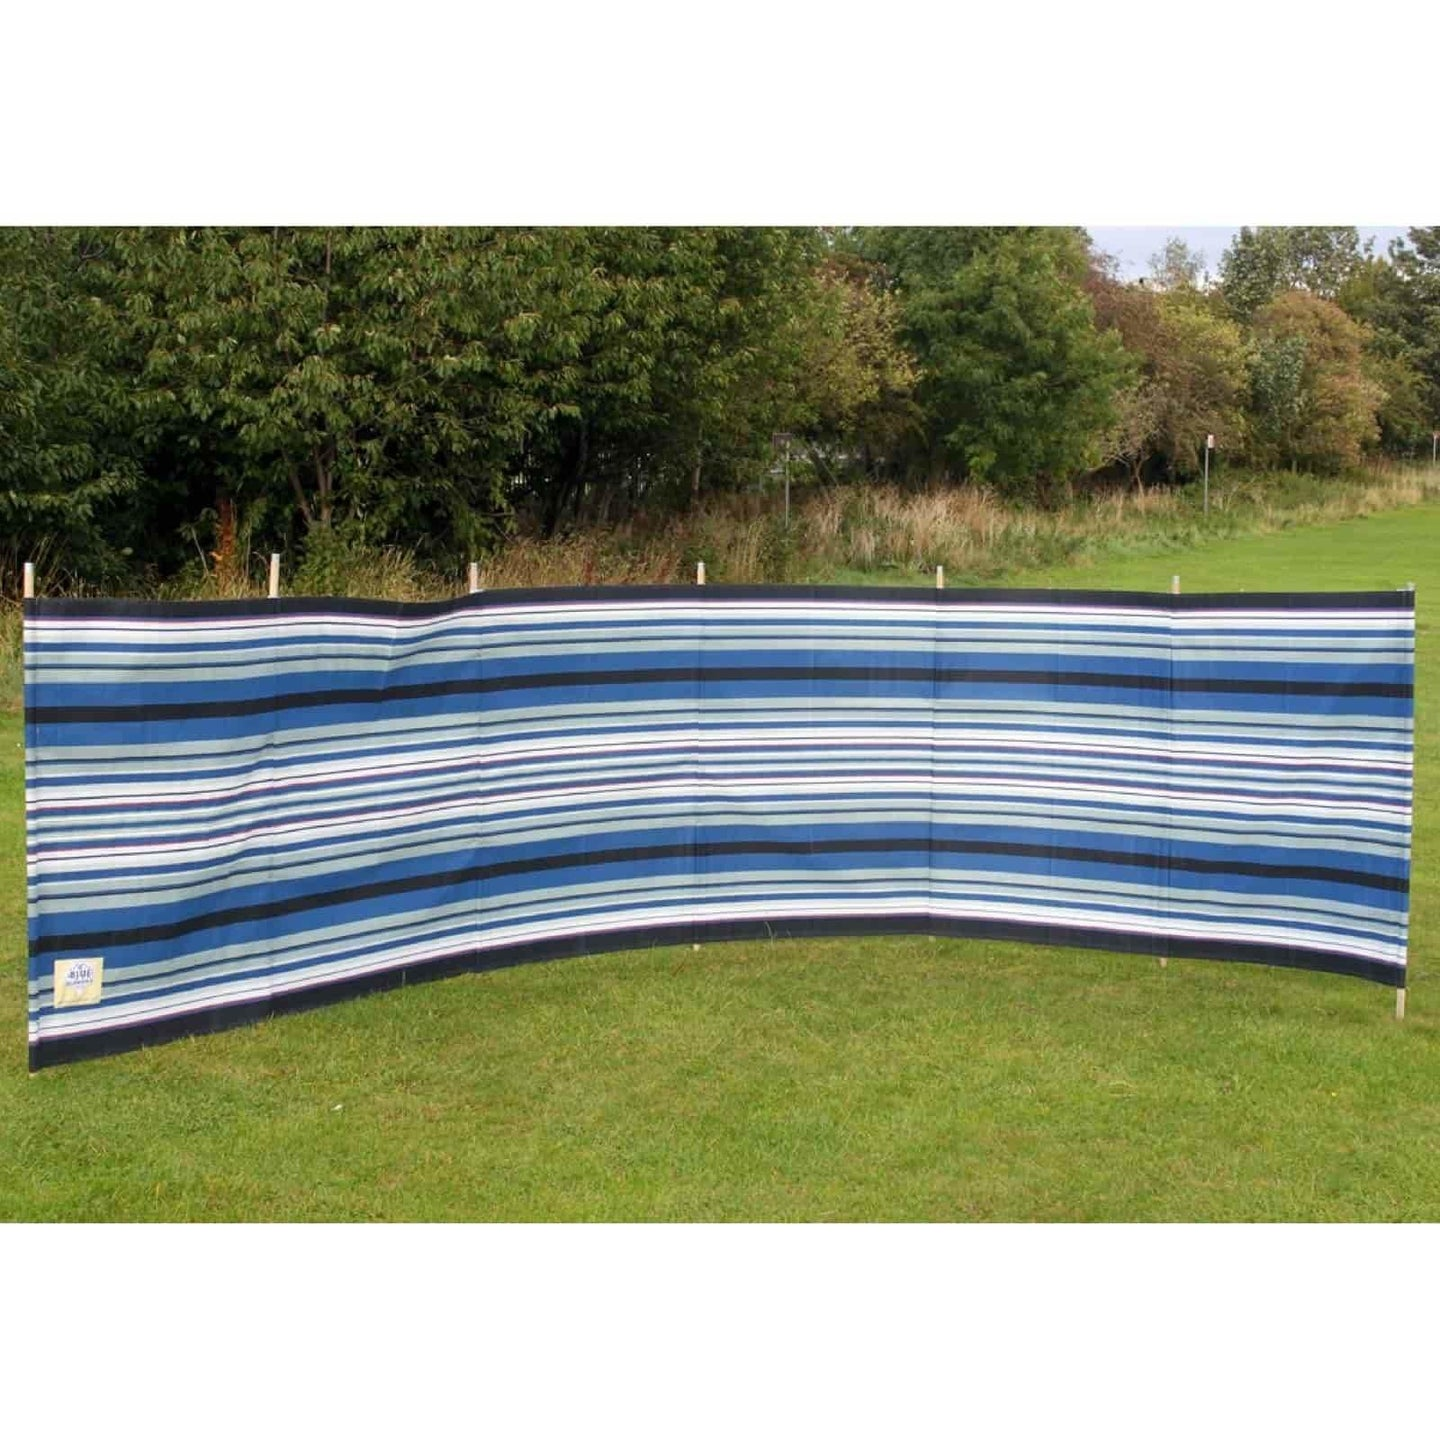 Outdoor Revolution 7 Pole Navy/Burgundy Contemporary Stripe WB780 made by Outdoor Revolution. A Accessories sold by Quality Caravan Awnings